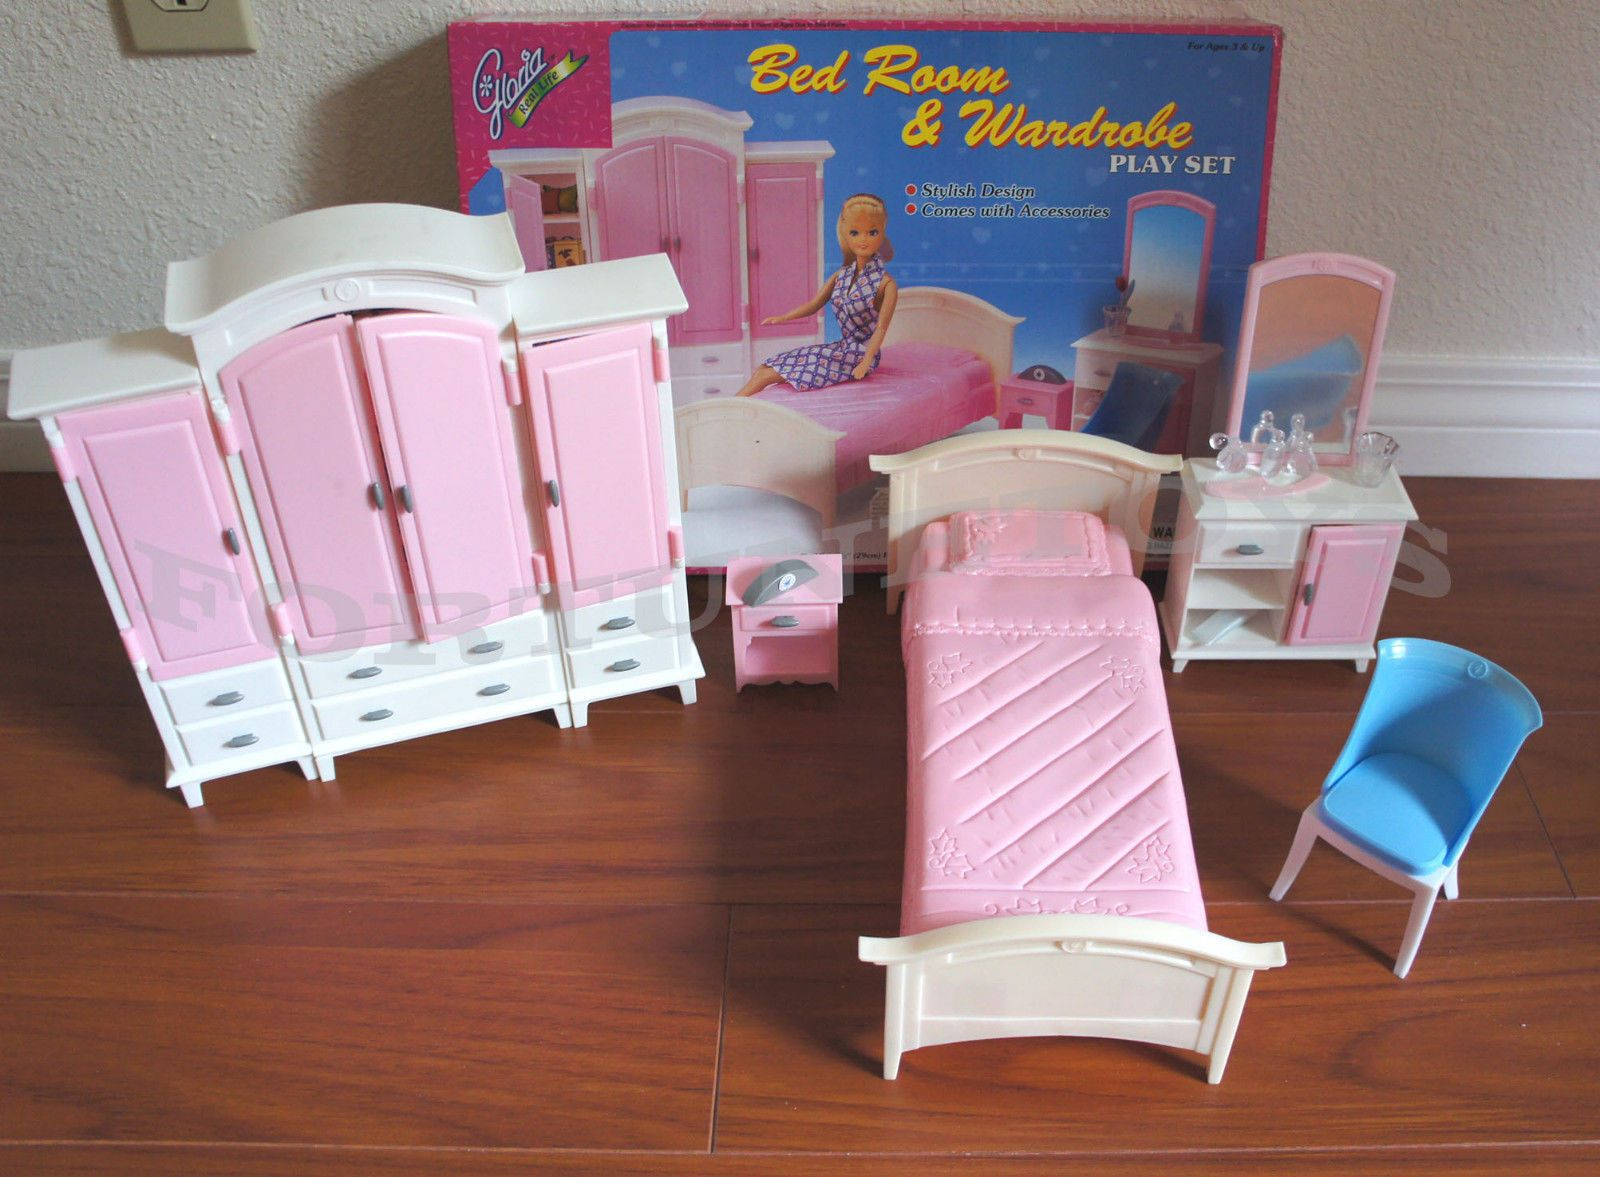 new gloria doll house furniture bedroom & wardrobe playset (24014